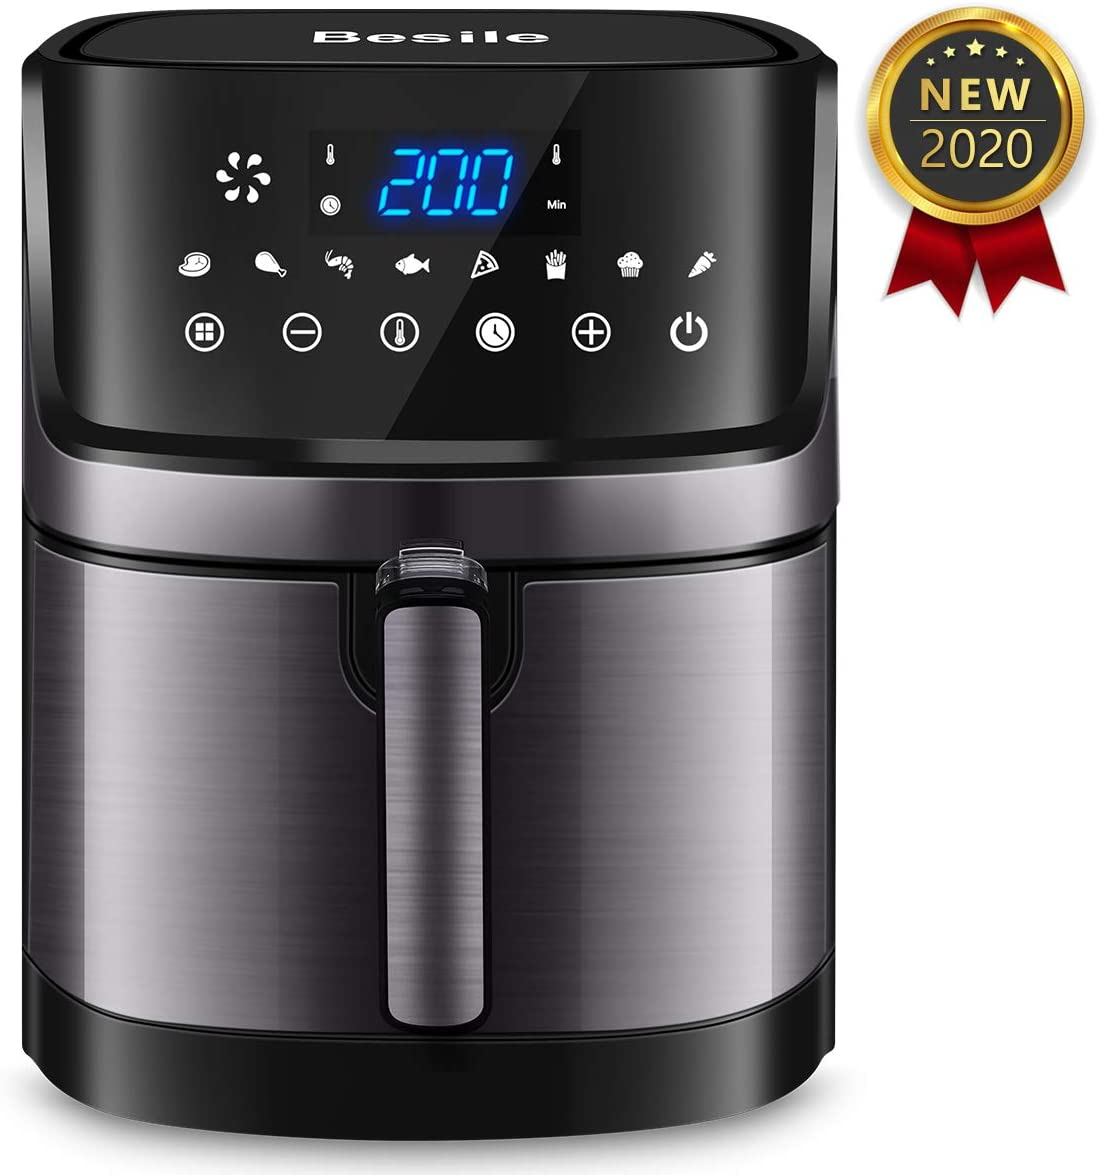 Besile Air Fryer XL5.8 Quart,1700-Watts Stainless Steel Hot Air Fryer Oven, LED Digital Touchscreen with 8 Cooking Presets,Nonstick Square Basket